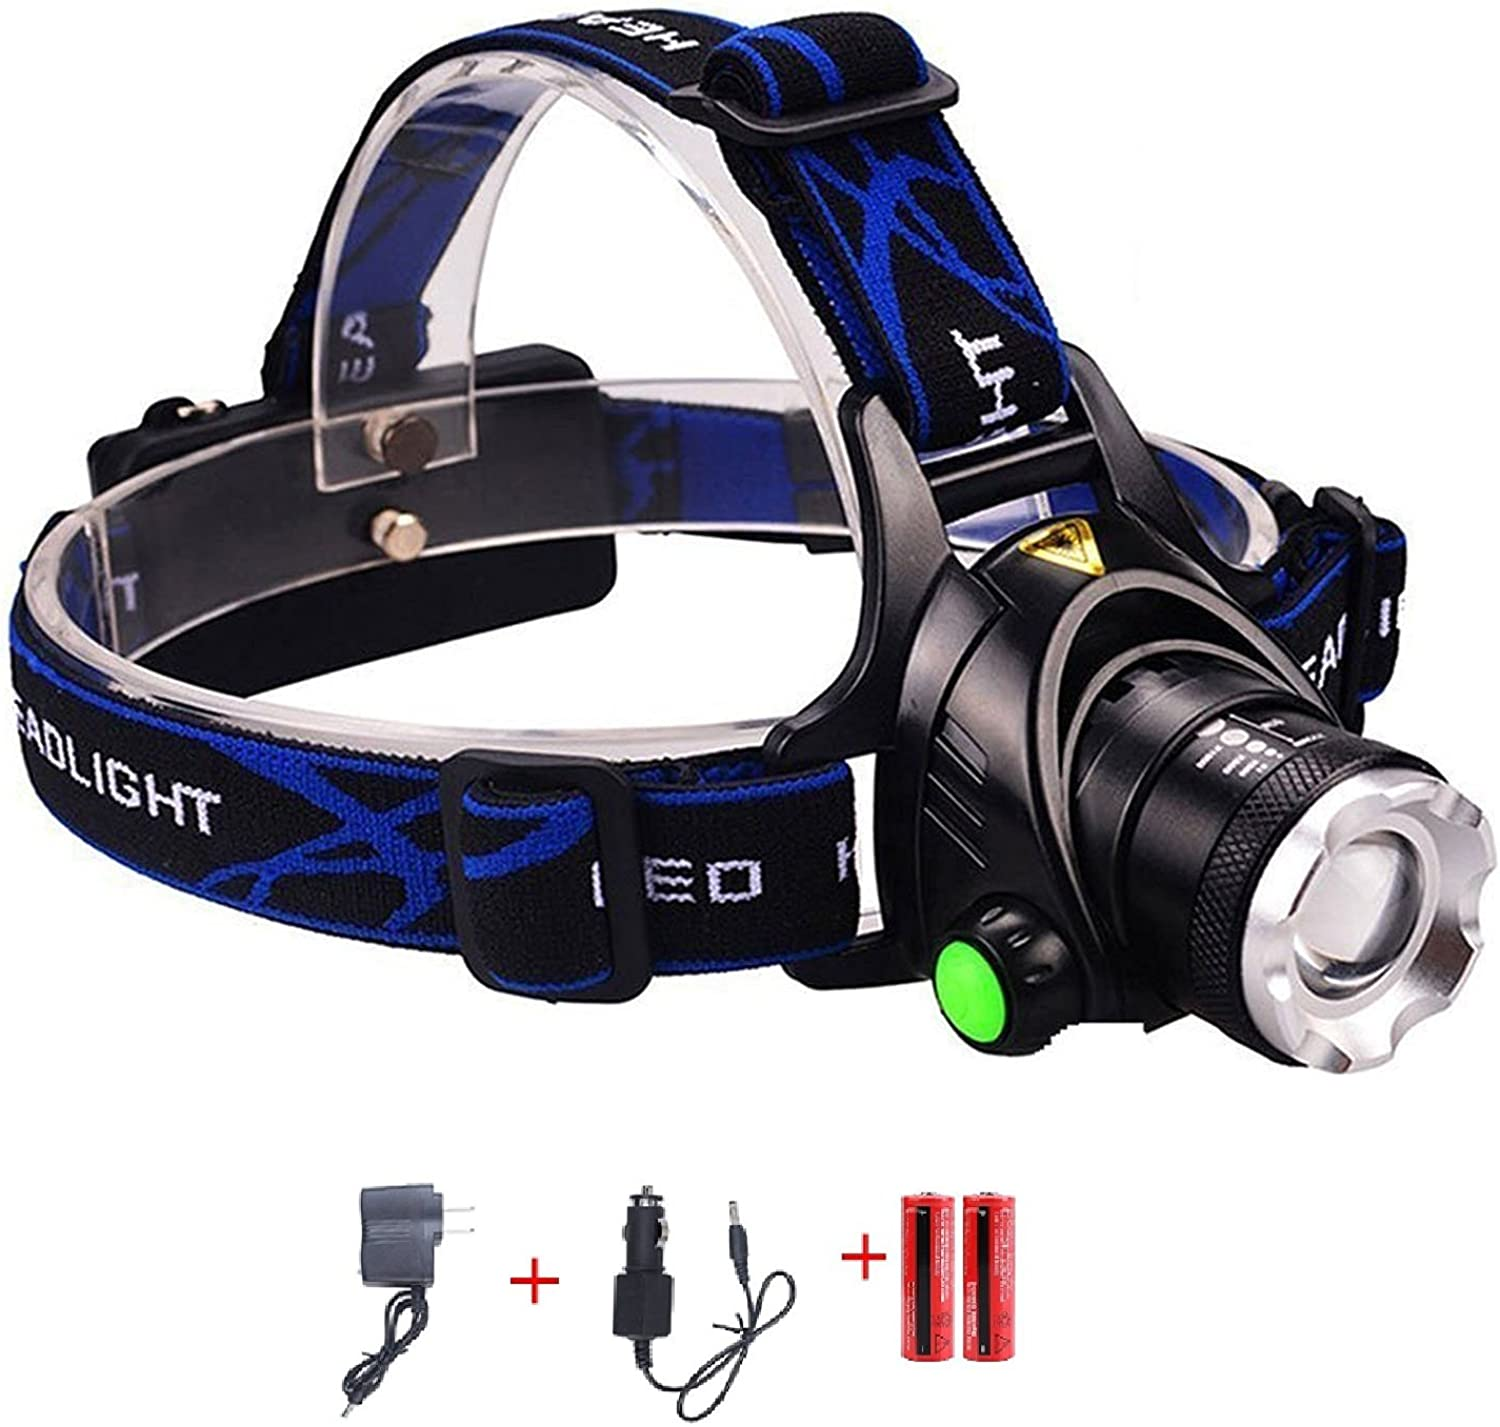 N.CHOICE Zoomable 3 Modes Super Bright LED Headlamp with Rechargeable Batteries, Car Charger, Wall Charger